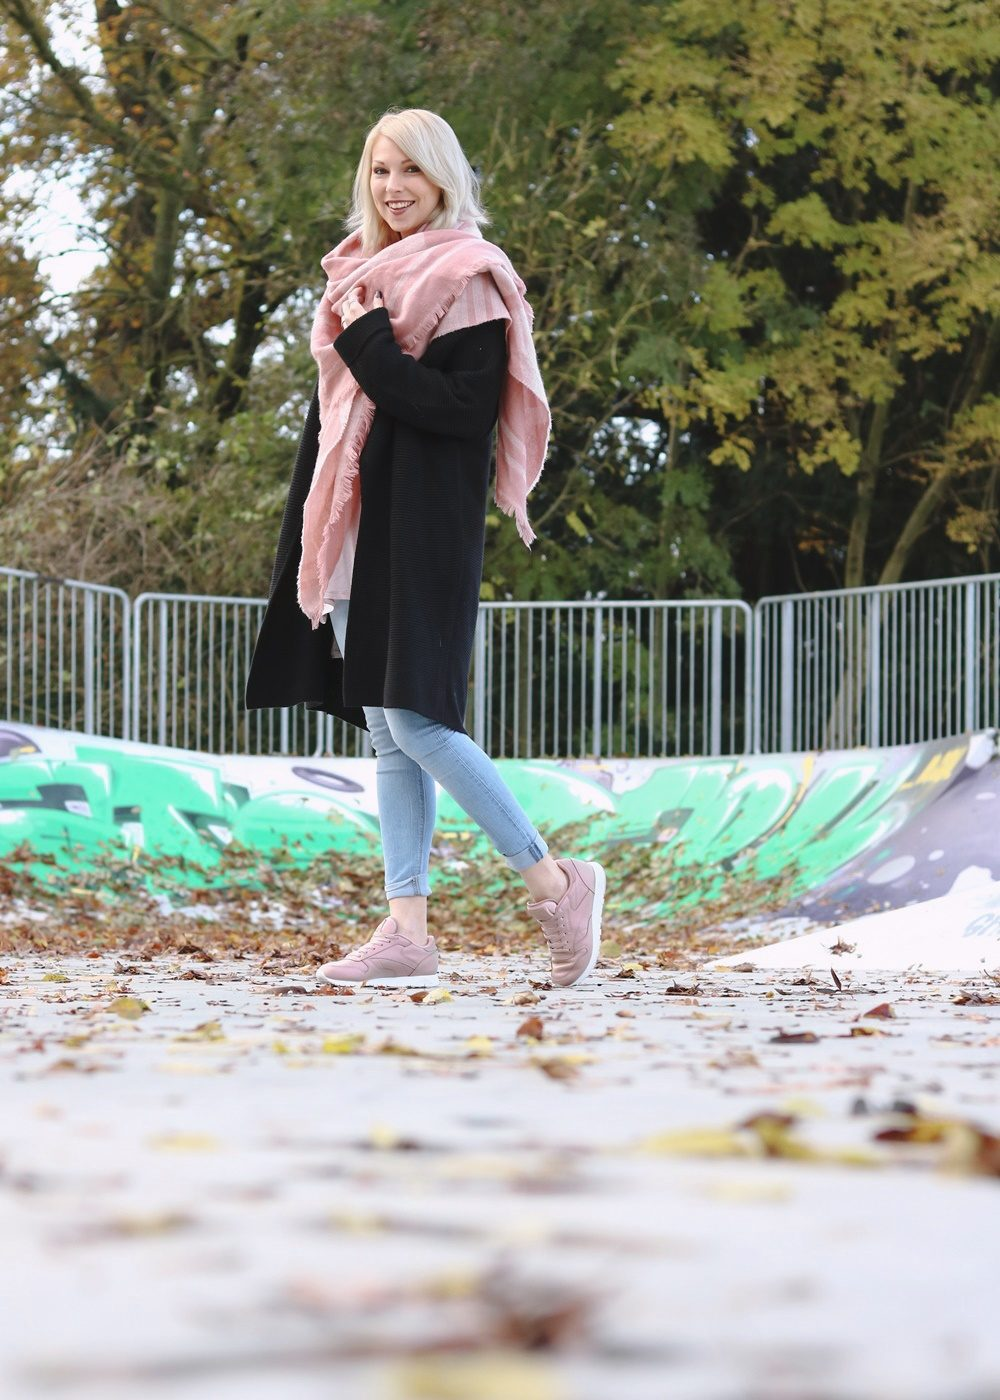 modeblogger-karlsruhe-outfit-herbst-skinnyjeans-rosa-schal-strickcardigan-reebok-classics-pearlized-metallic-9